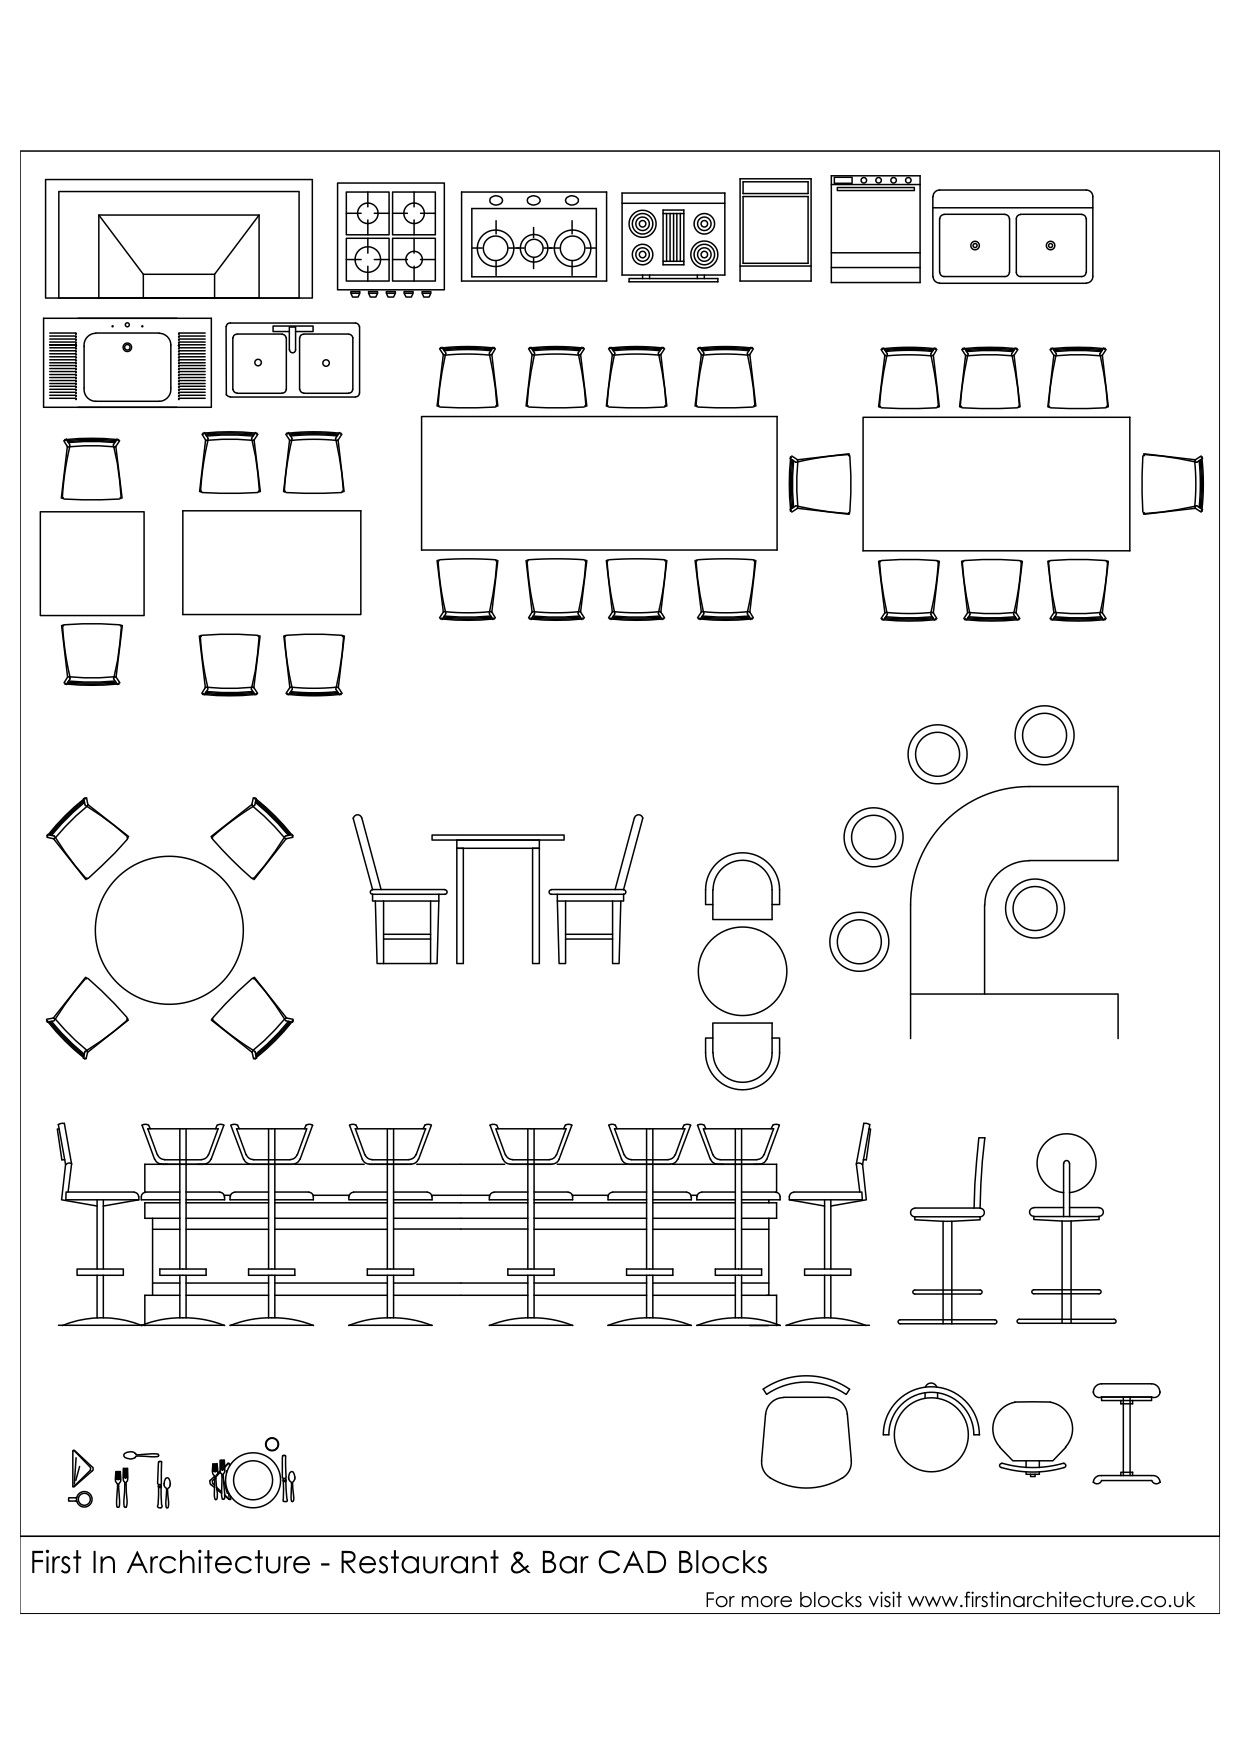 small resolution of here is another set of free cad blocks from the first in architecture cad block database we hope you find them useful please feel